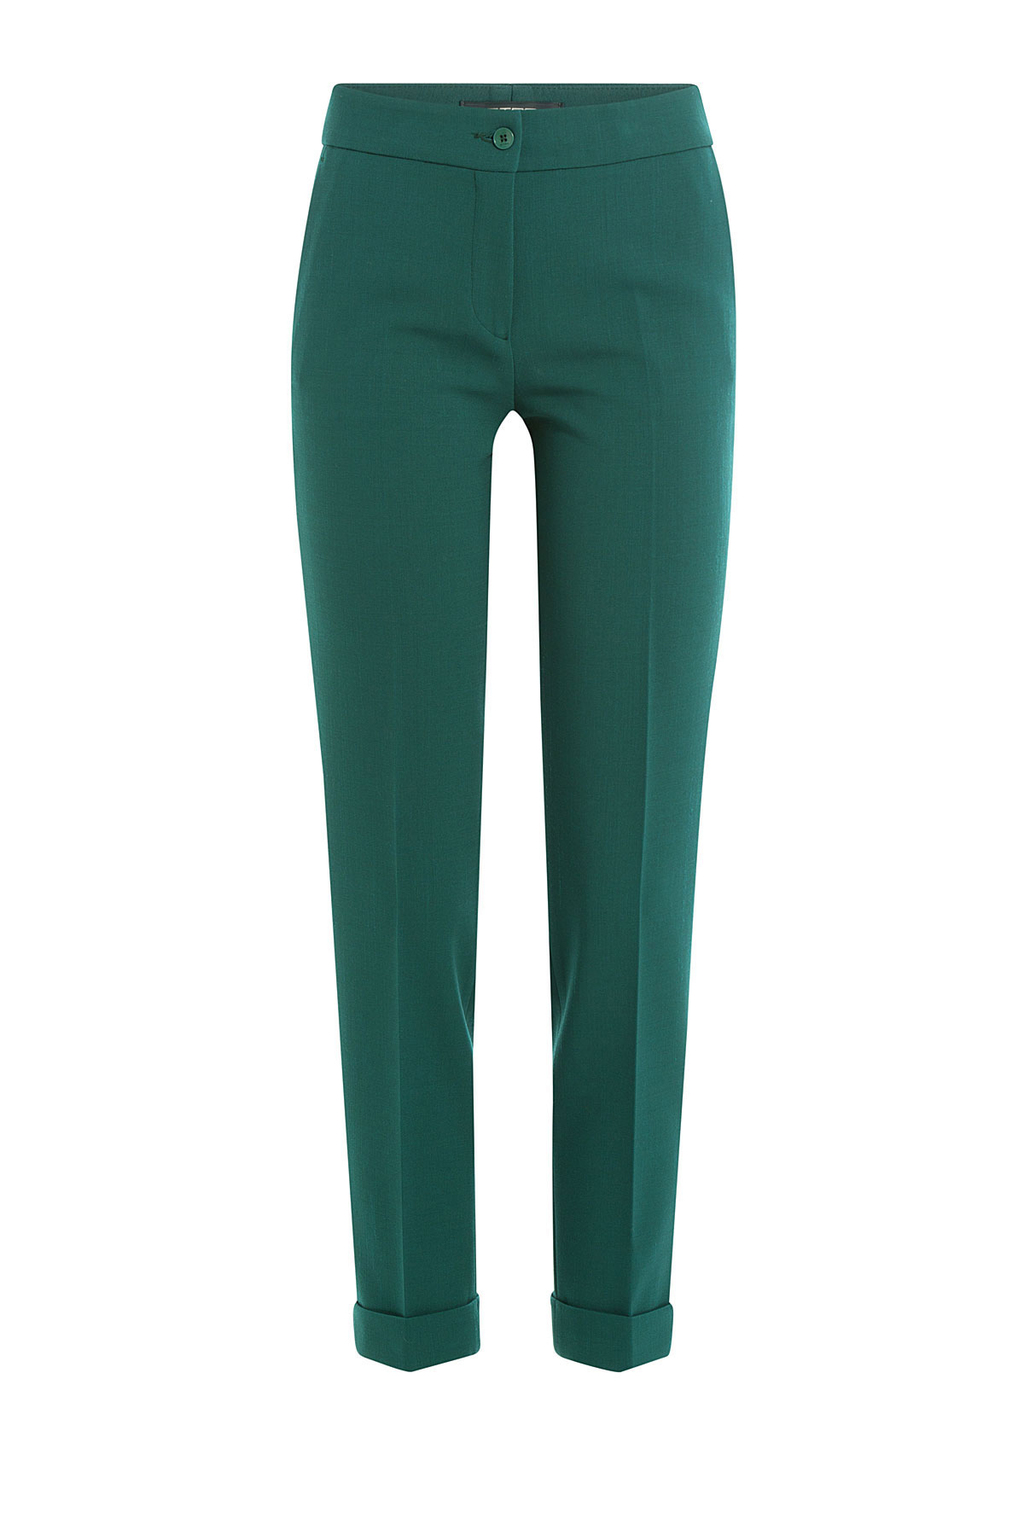 Wool Pants - length: standard; pattern: plain; waist: mid/regular rise; predominant colour: dark green; fibres: wool - mix; fit: slim leg; pattern type: fabric; texture group: woven light midweight; style: standard; occasions: creative work; season: a/w 2016; wardrobe: highlight